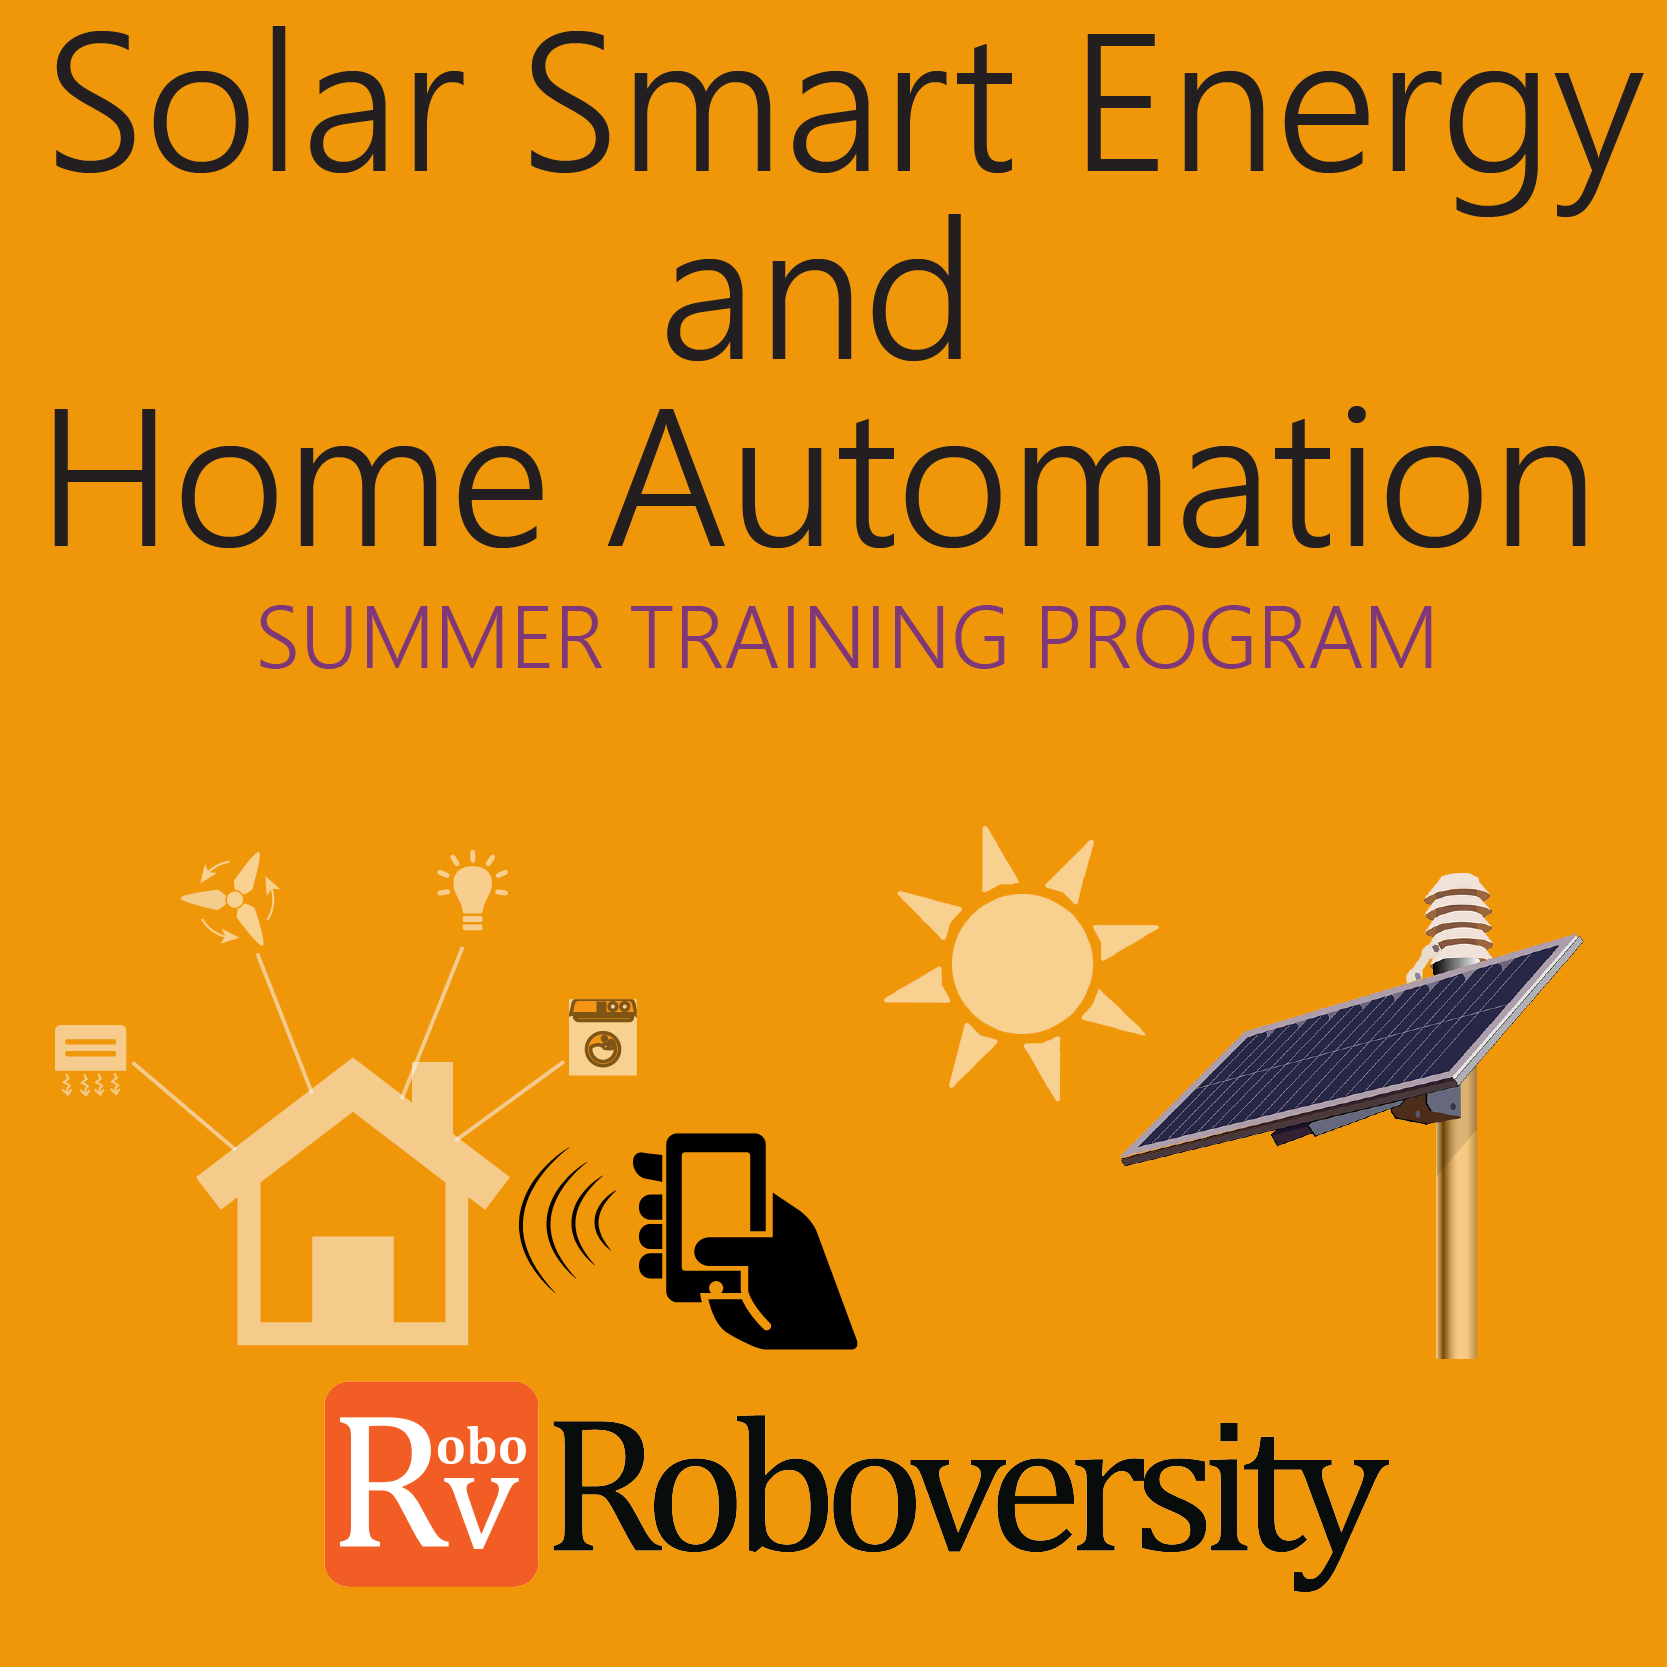 Summer Training Program on Home Automation and Solar Smart Energy Systems